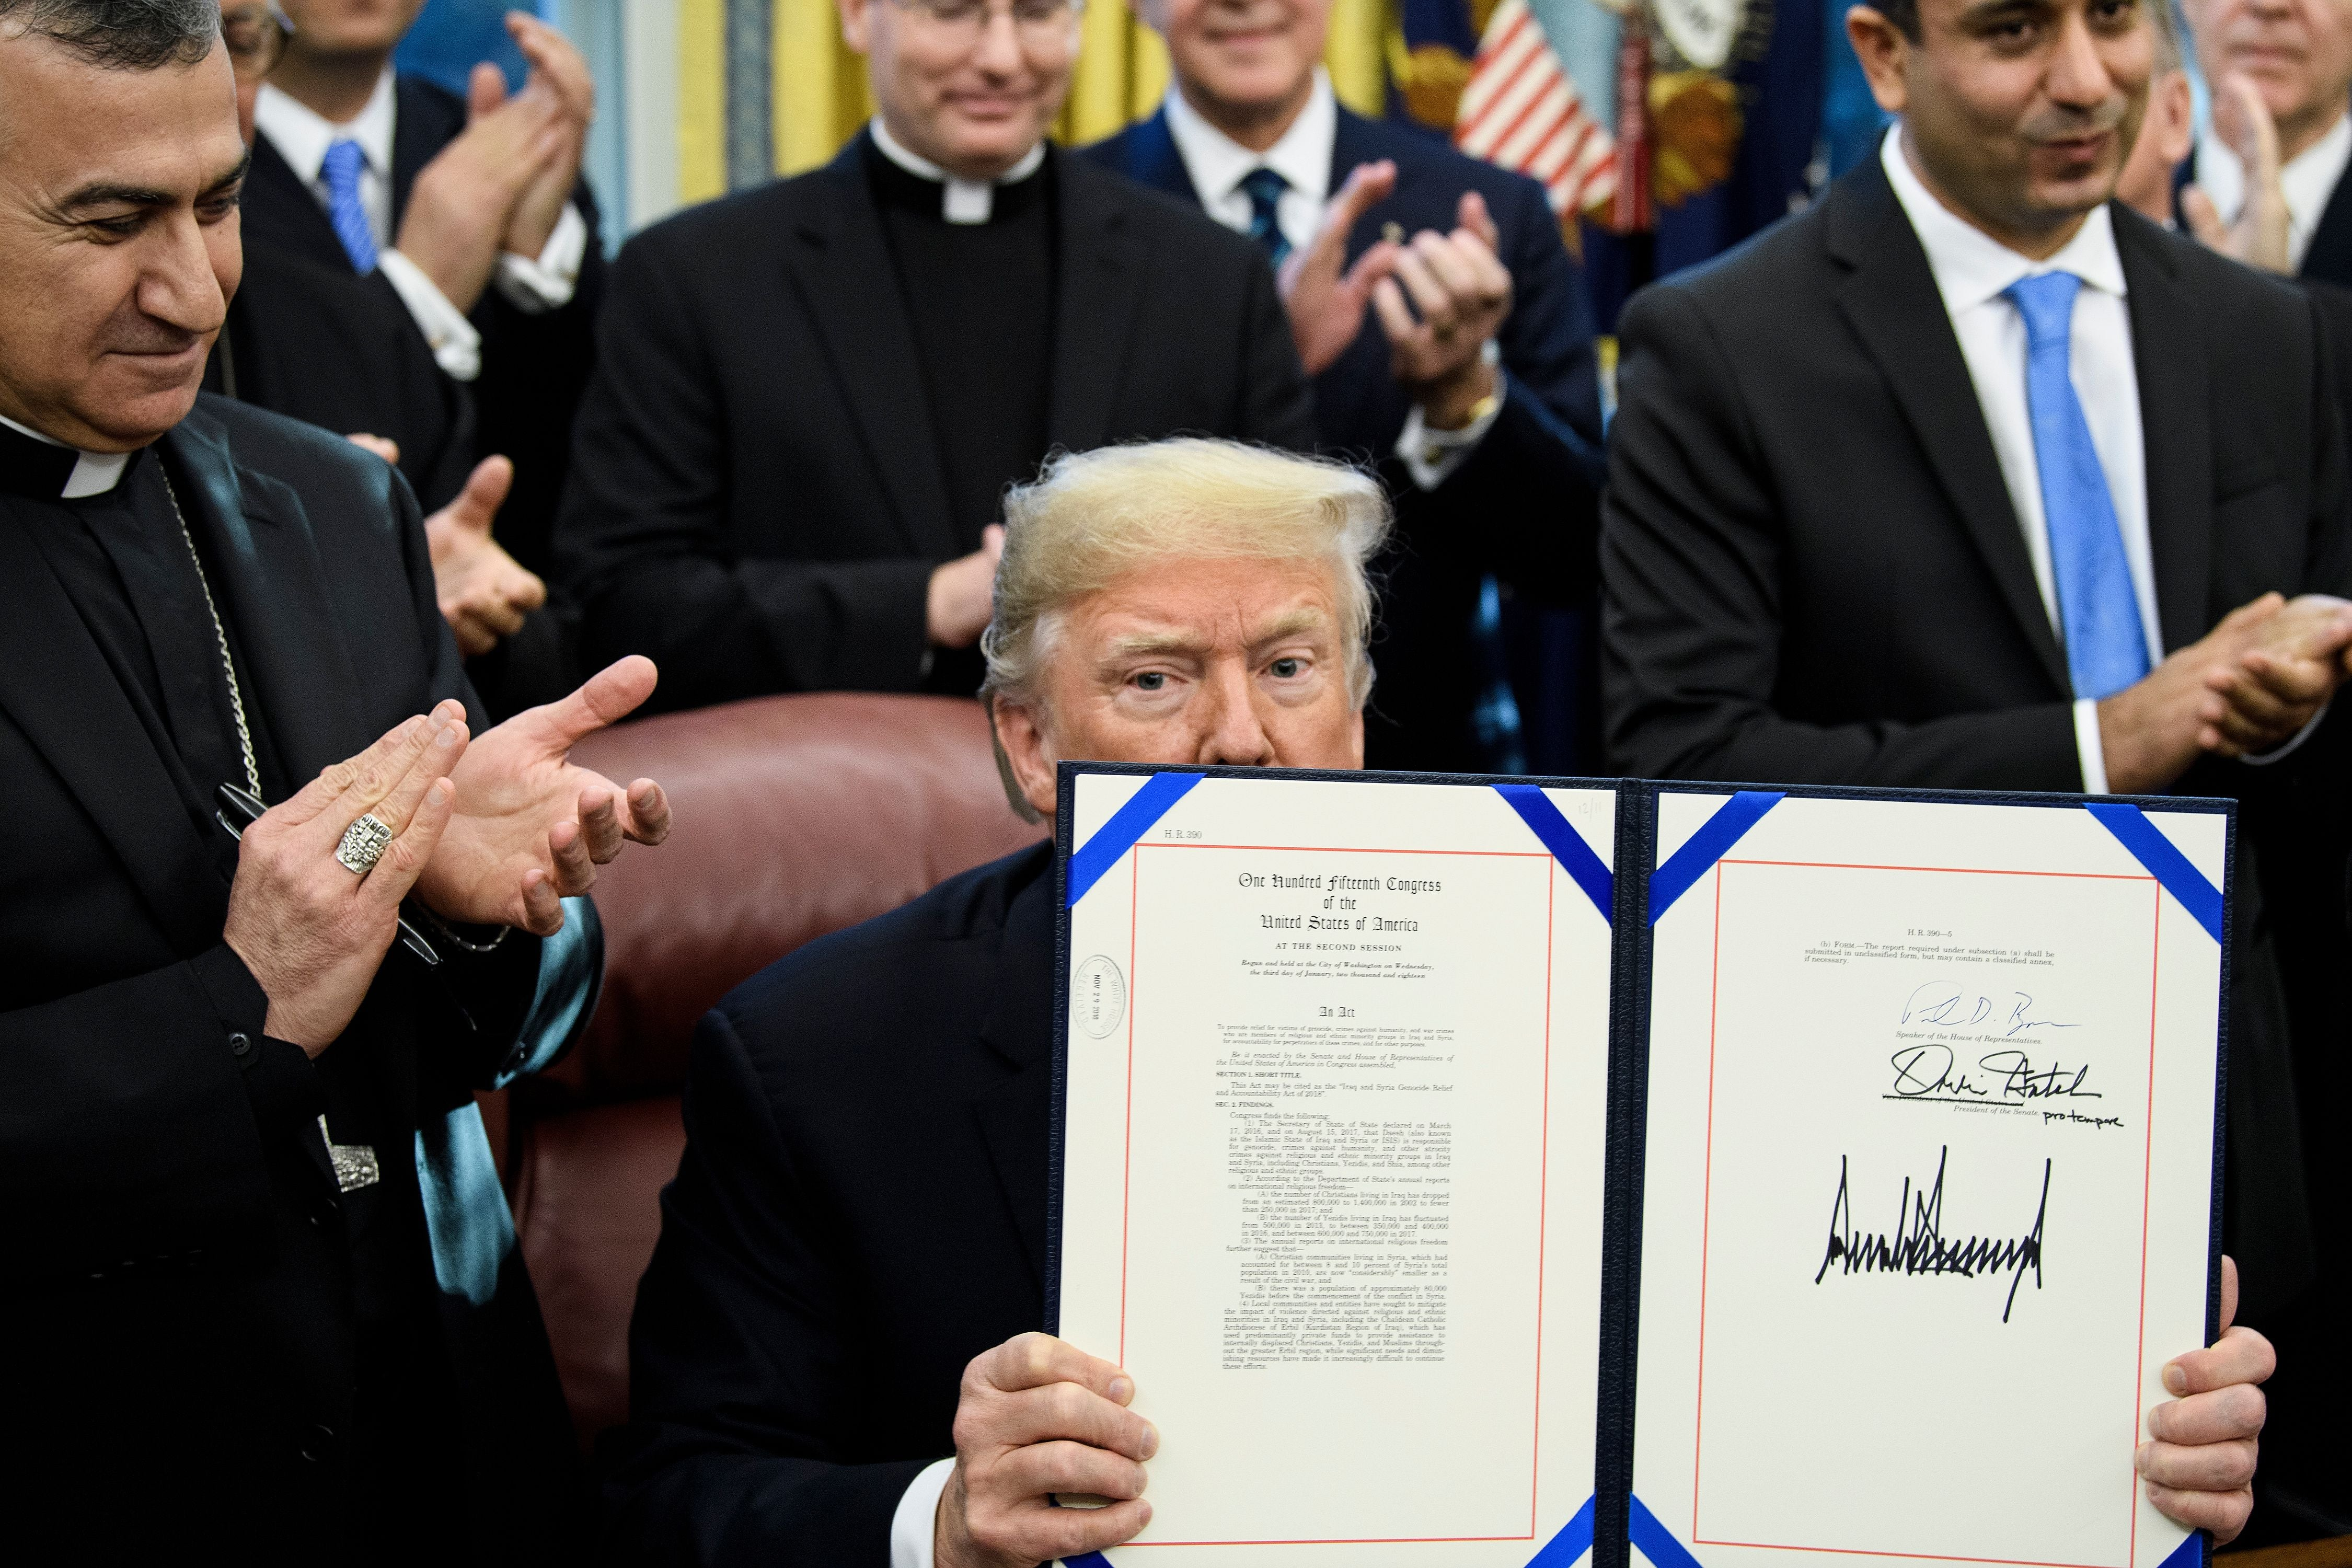 Trump's eyes peek over a folder that he's holding up of the bill he just signed.